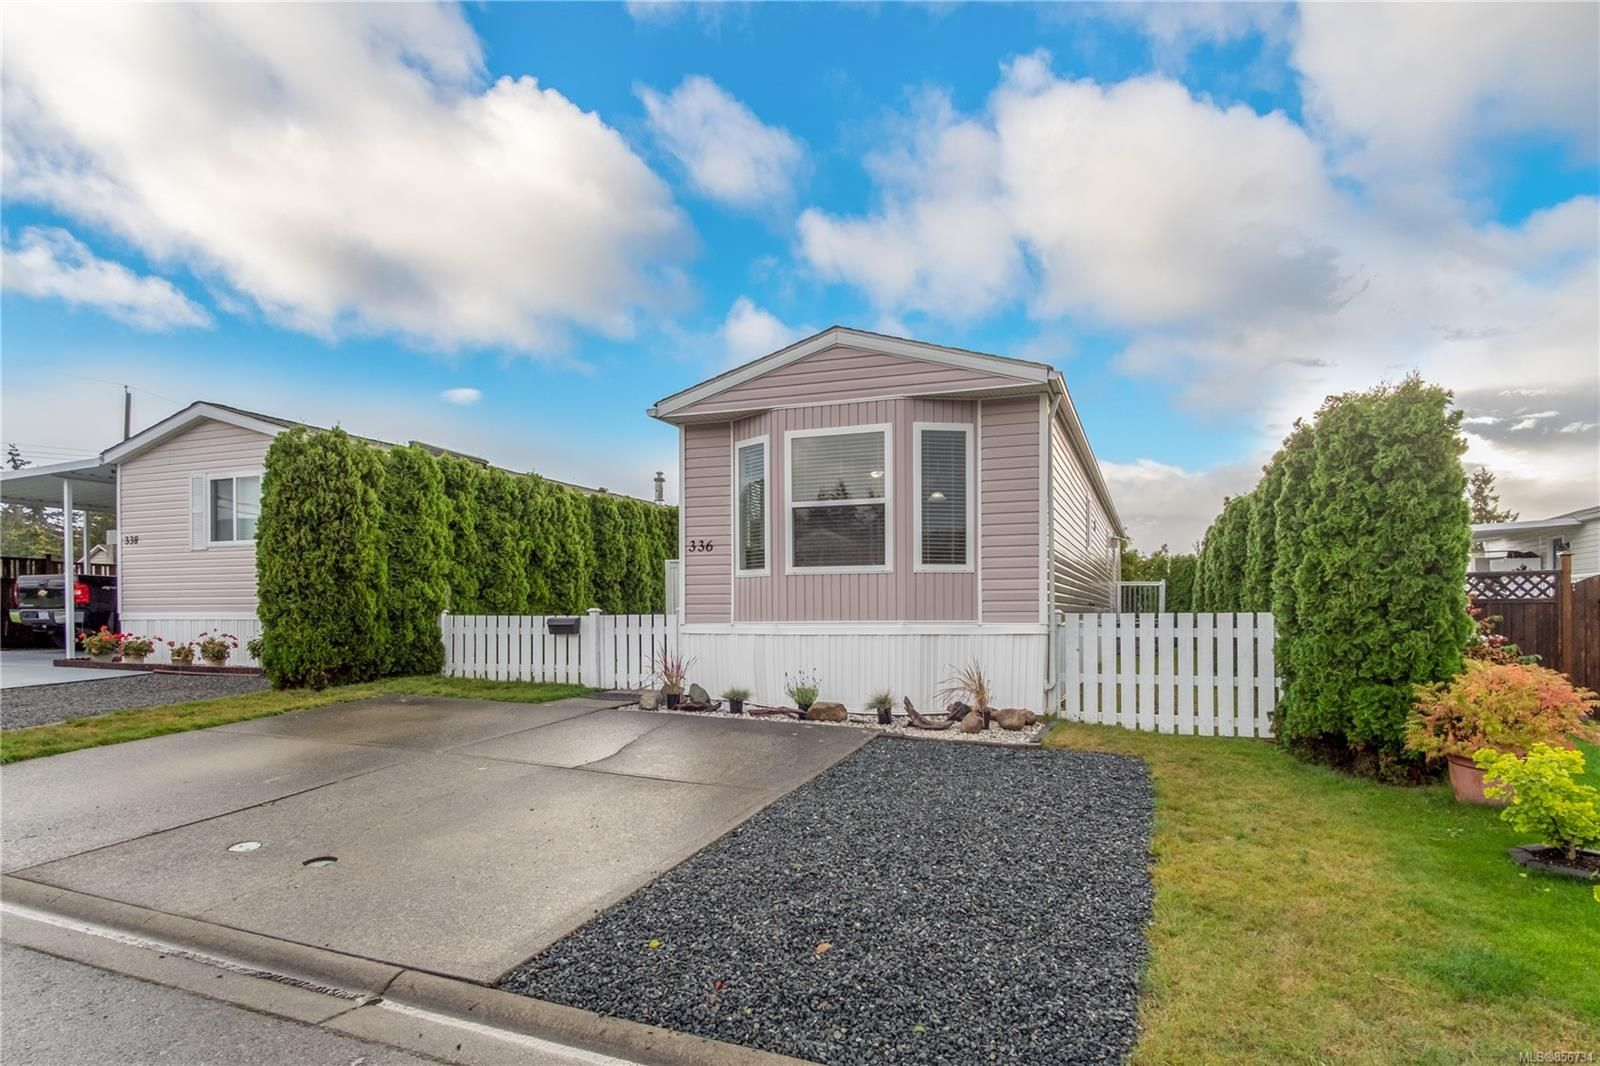 Main Photo: 336 Myrtle Cres in : Na South Nanaimo Manufactured Home for sale (Nanaimo)  : MLS®# 856734